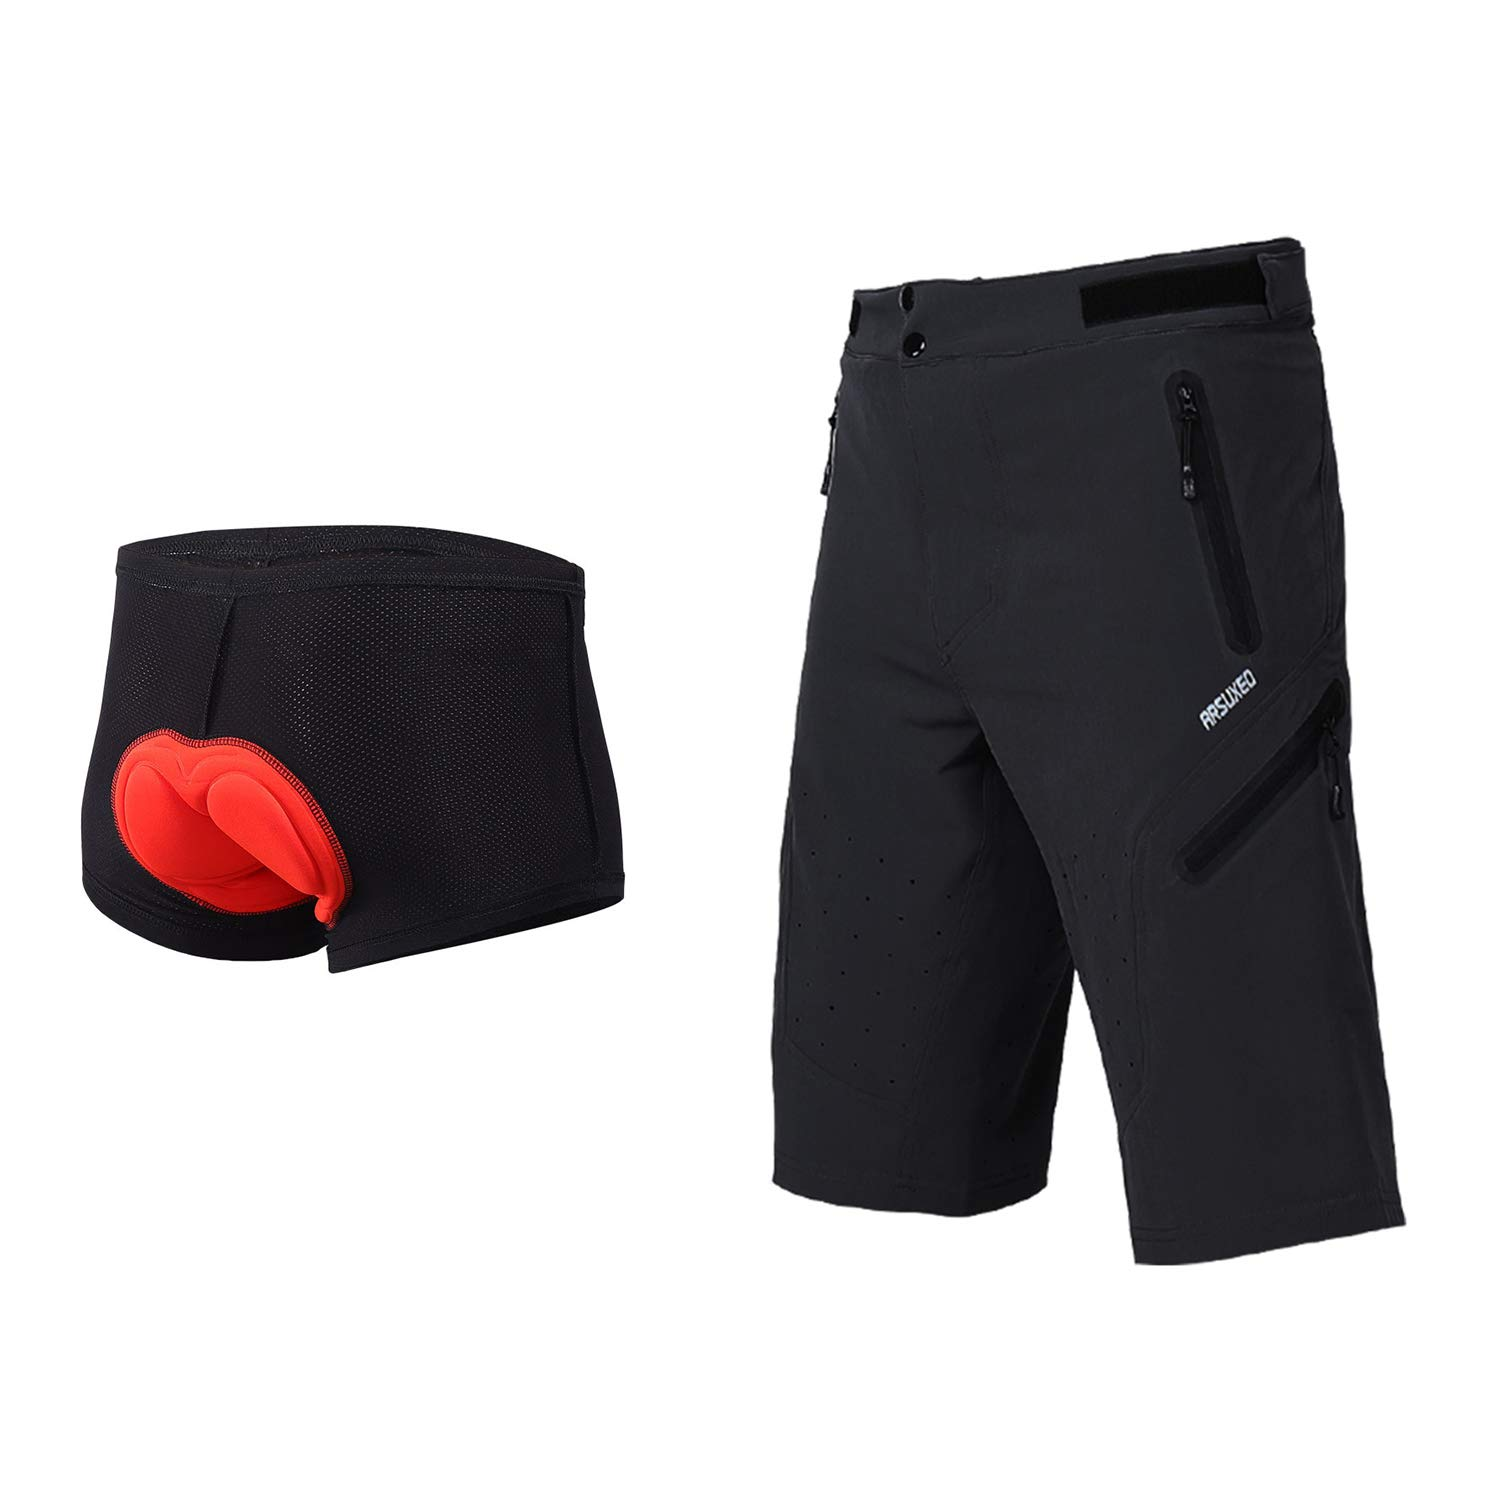 934f64408 Amazon.com  ARSUXEO Outdoor Sports Men s MTB Cycling Shorts Mountain Bike  Shorts Water Resistant  Sports   Outdoors